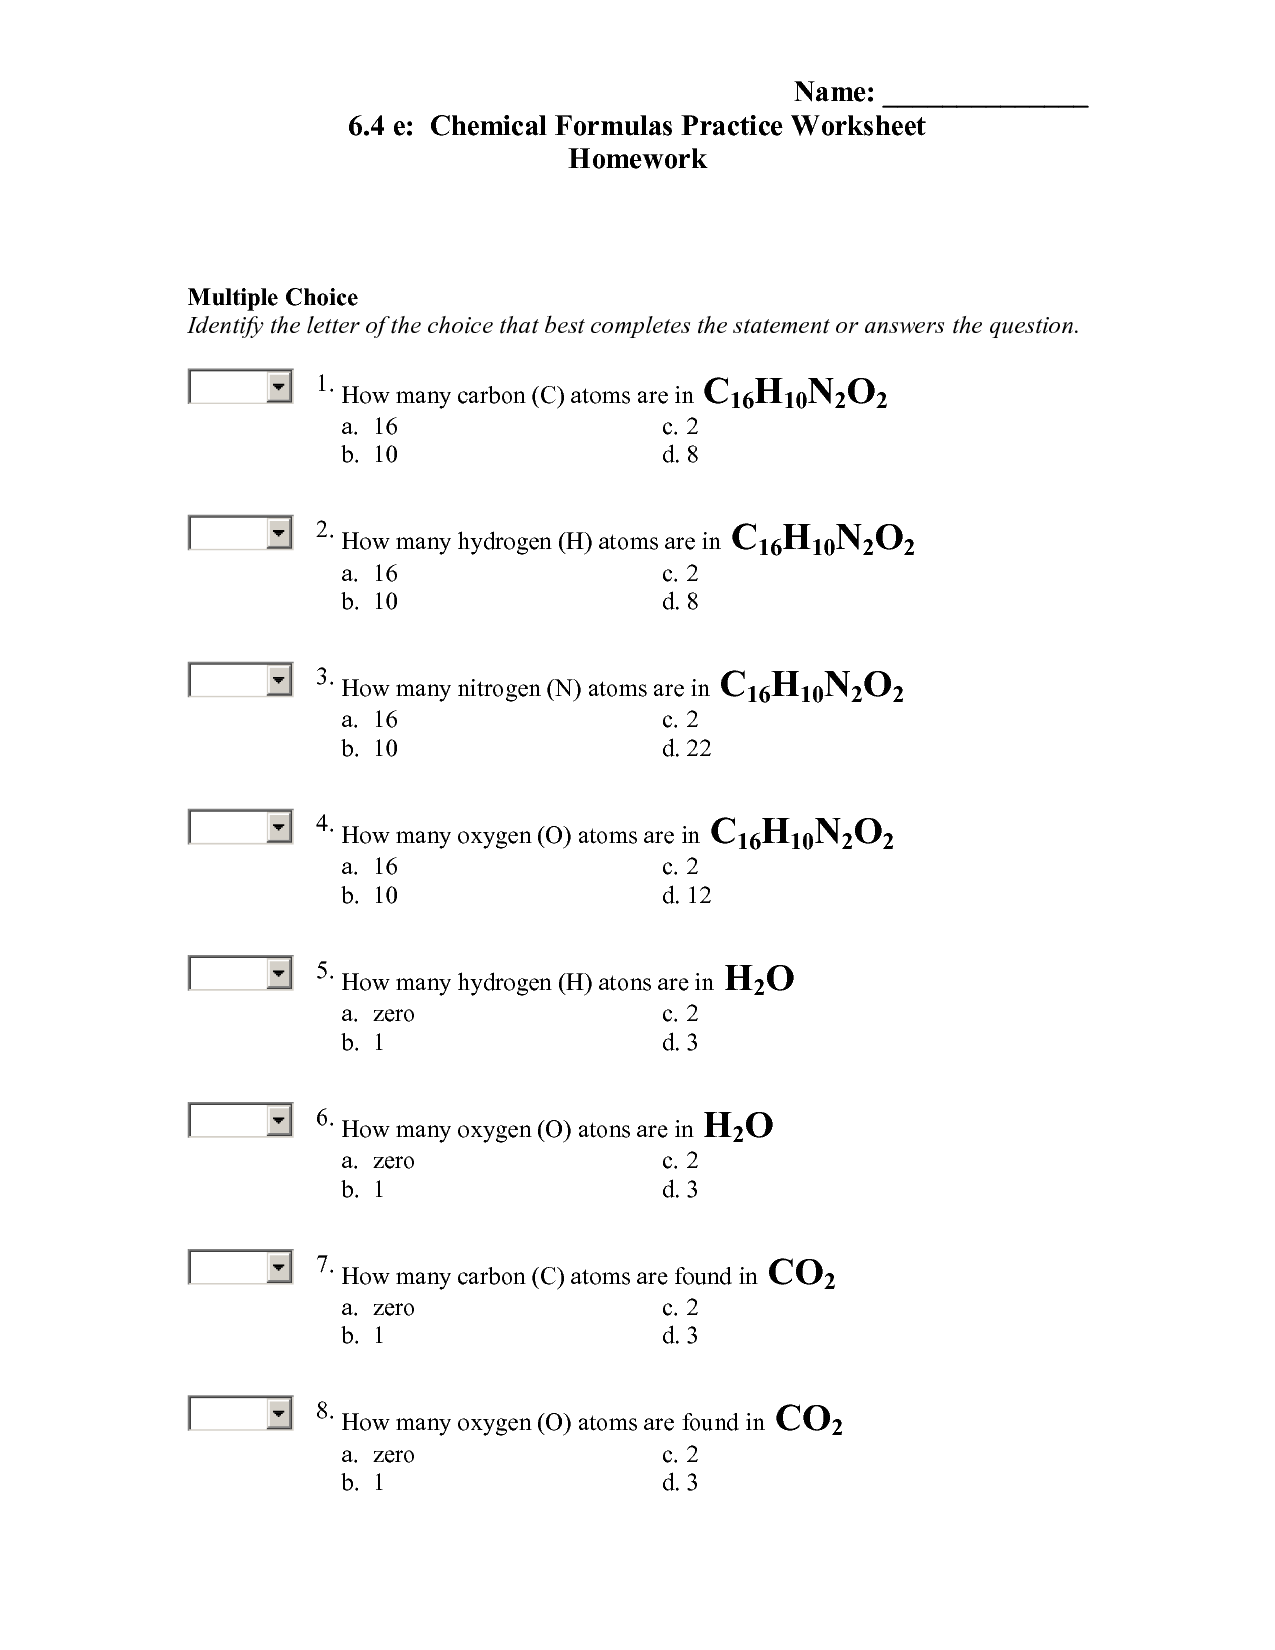 17 Best Images Of Chemical Formula Worksheet Answers